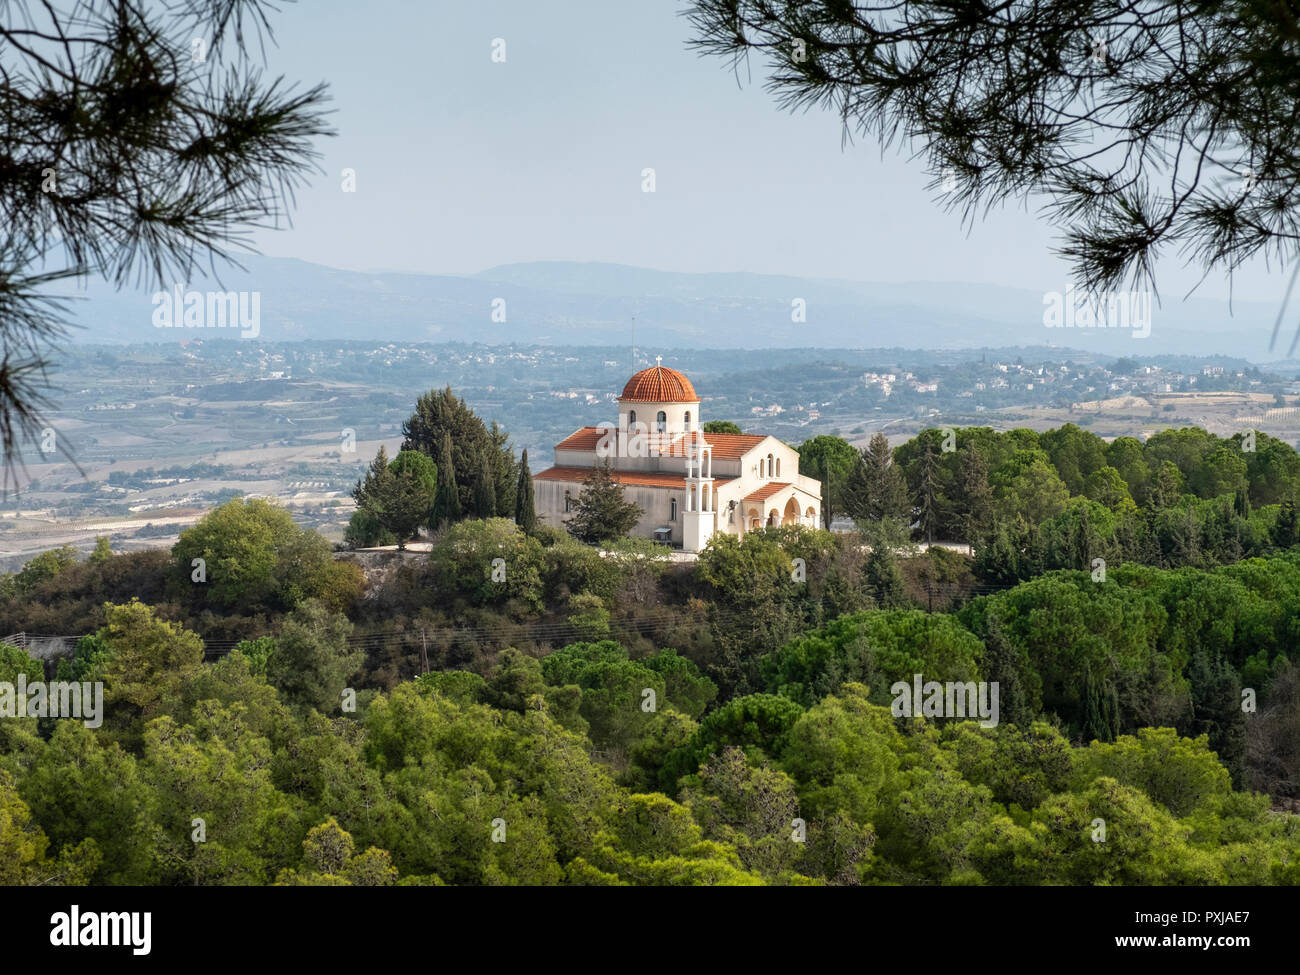 The church in the village of Pano Theletra sits on a elevated position surrounded by trees. - Stock Image